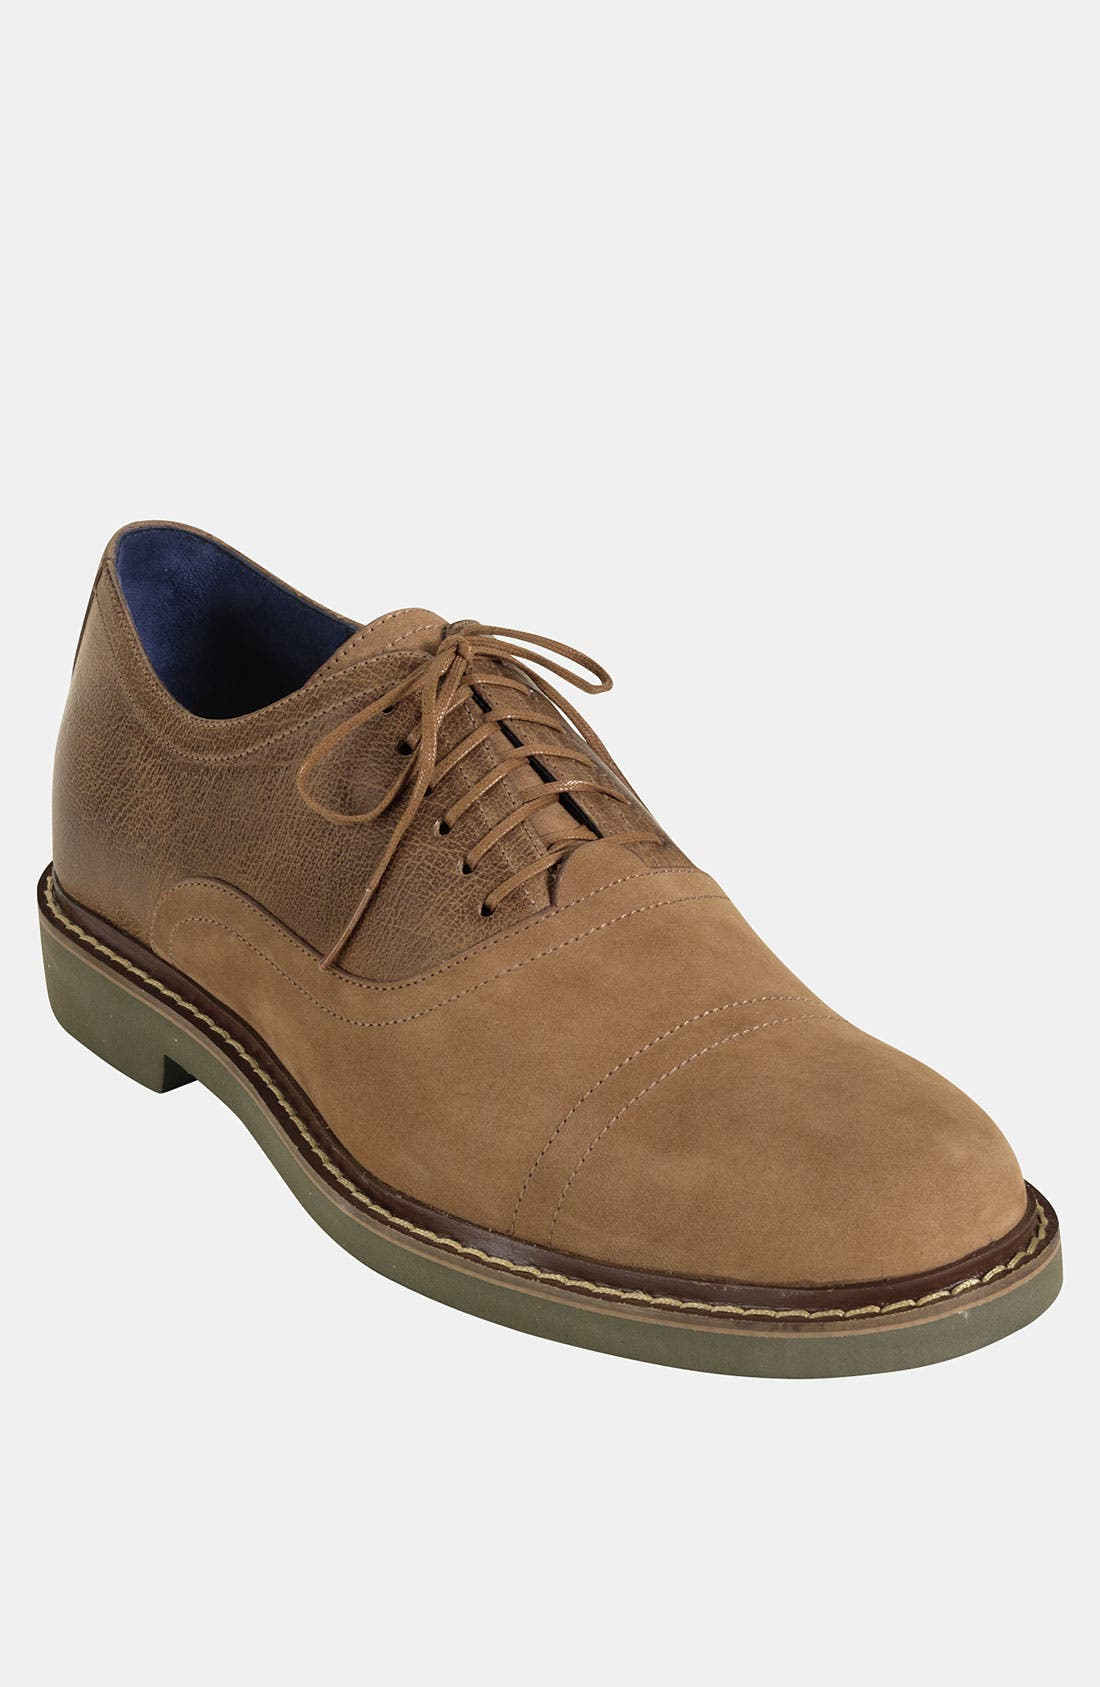 Main Image - Cole Haan 'Air Harrison' Cap Toe Oxford   (Men)